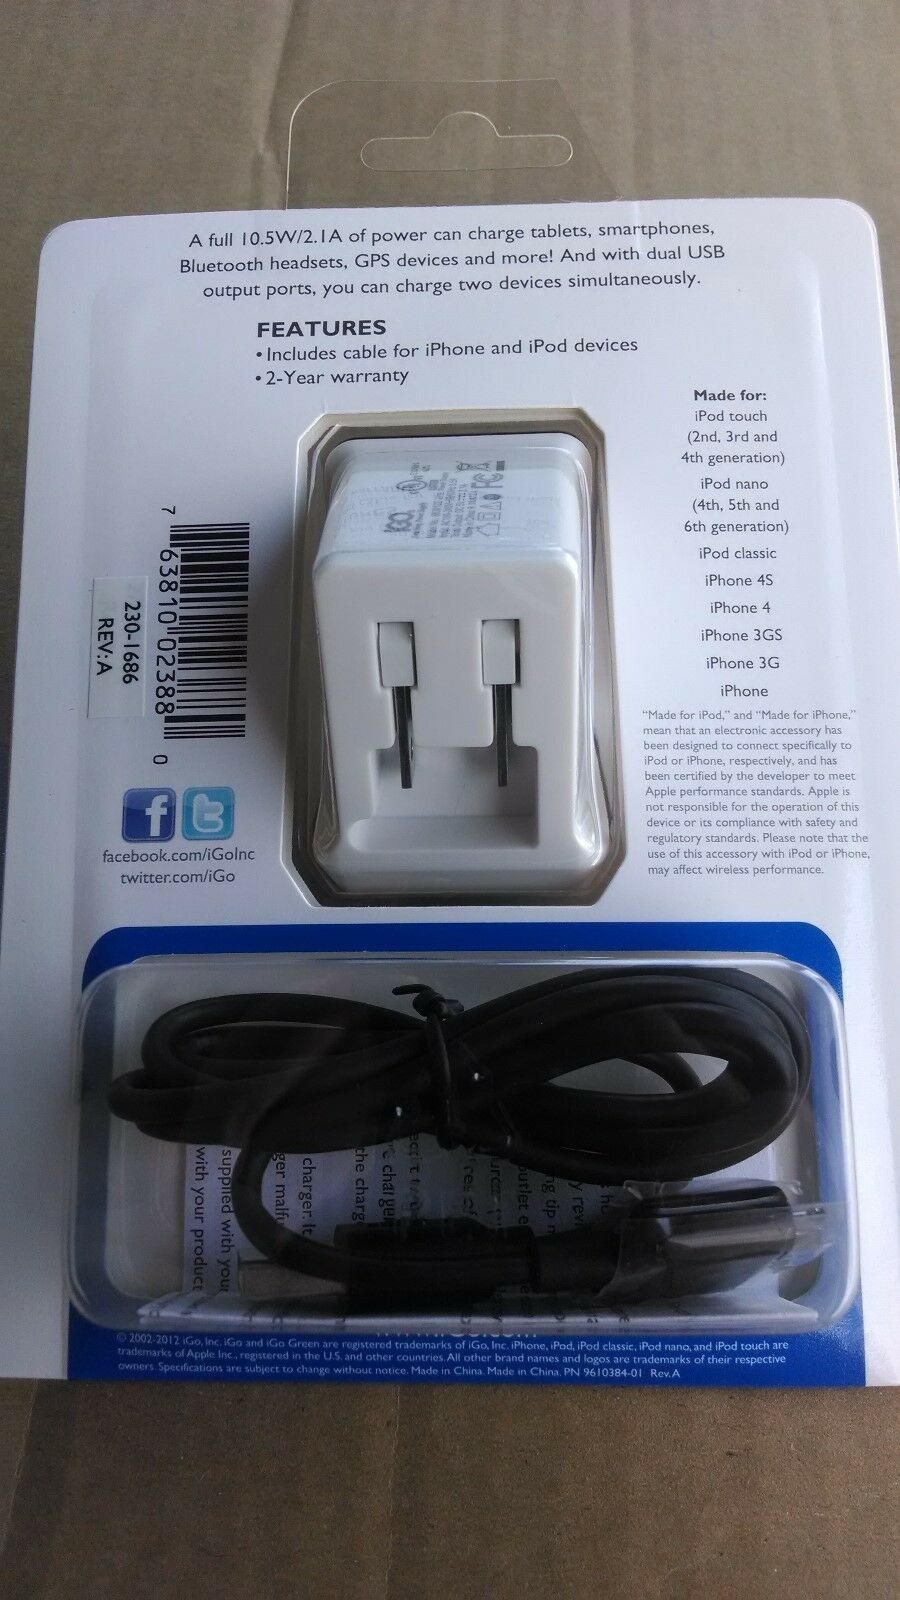 Igo Microjuice Dual Usb Universal Smartphone Wall Charger Ipod Full Compliance Battery Norton Secured Powered By Verisign